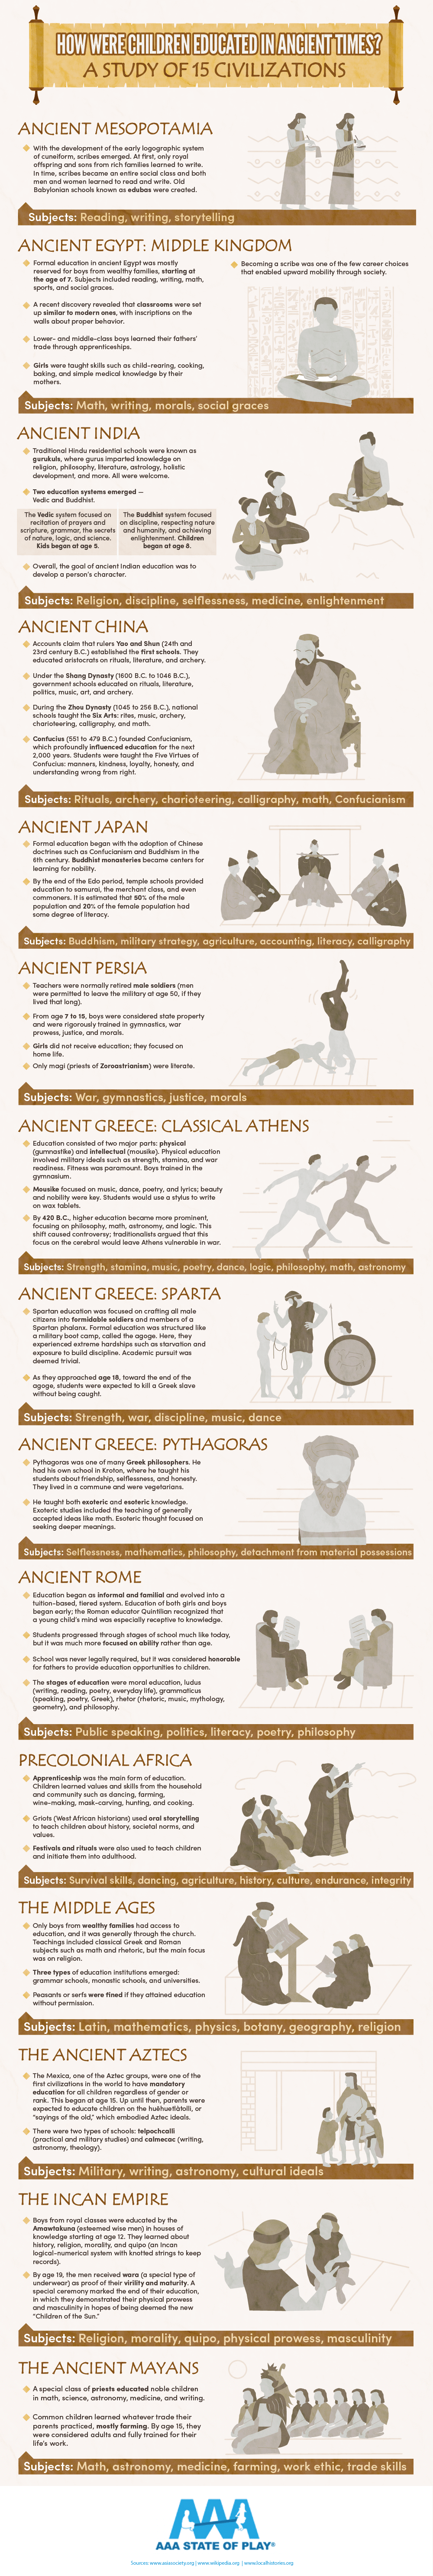 How Were Children Educated in Ancient Times - Infographic